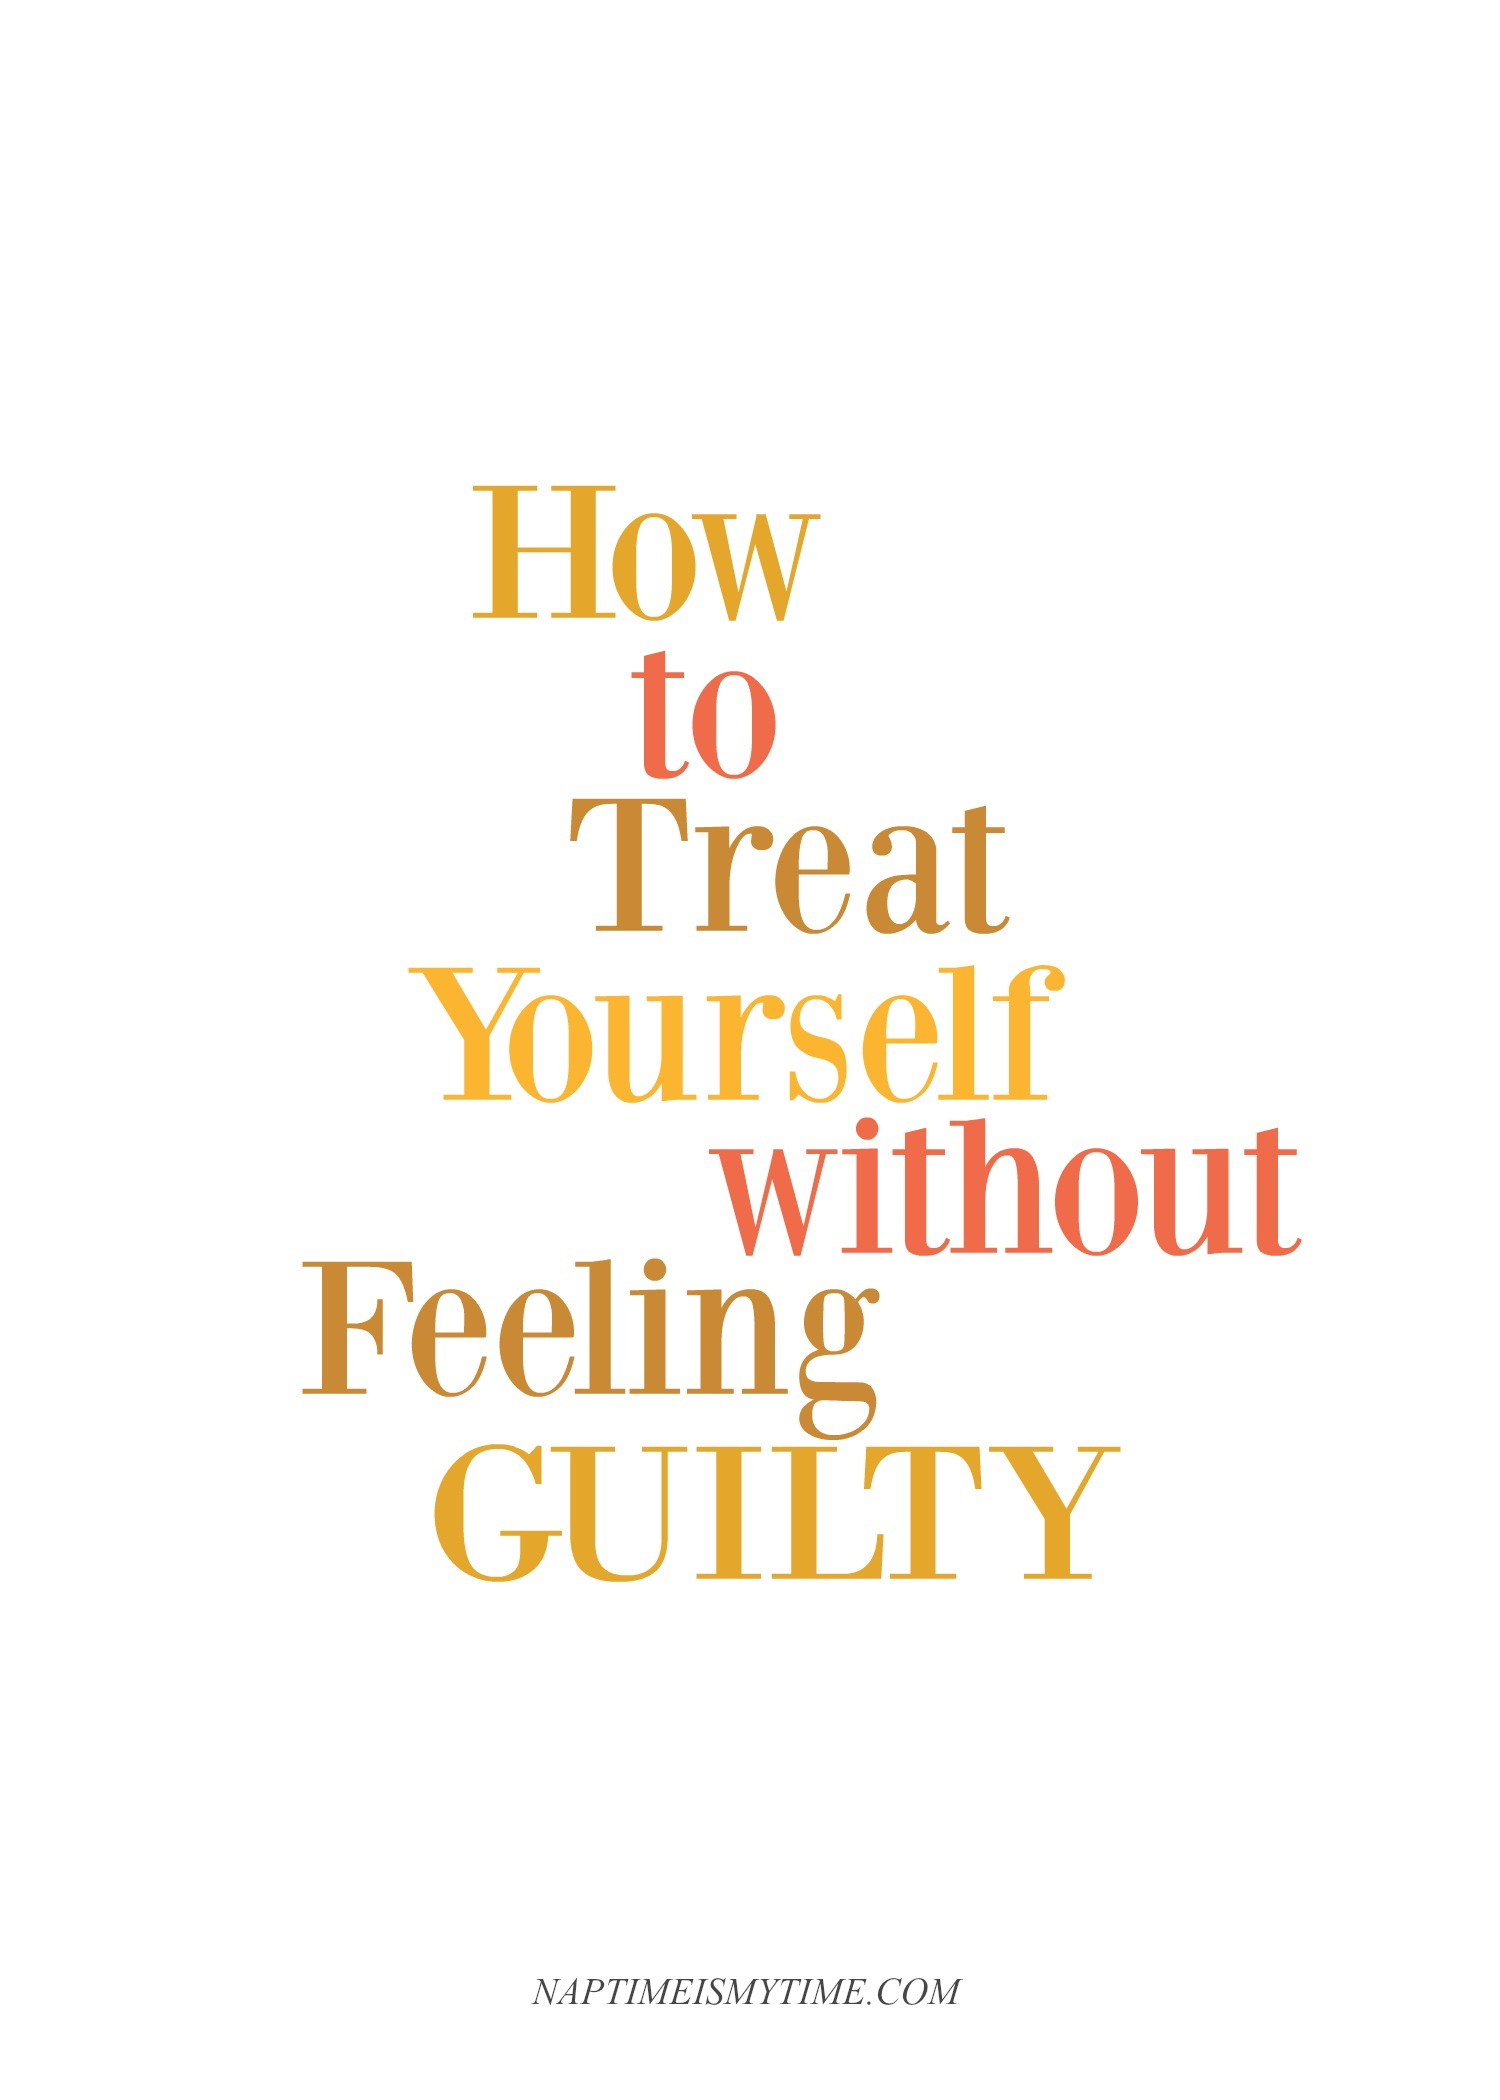 As a busy entrepreneur, it can be a challenge to treat yourself without feeling guilty. Today, I'm sharing tips to do just that!